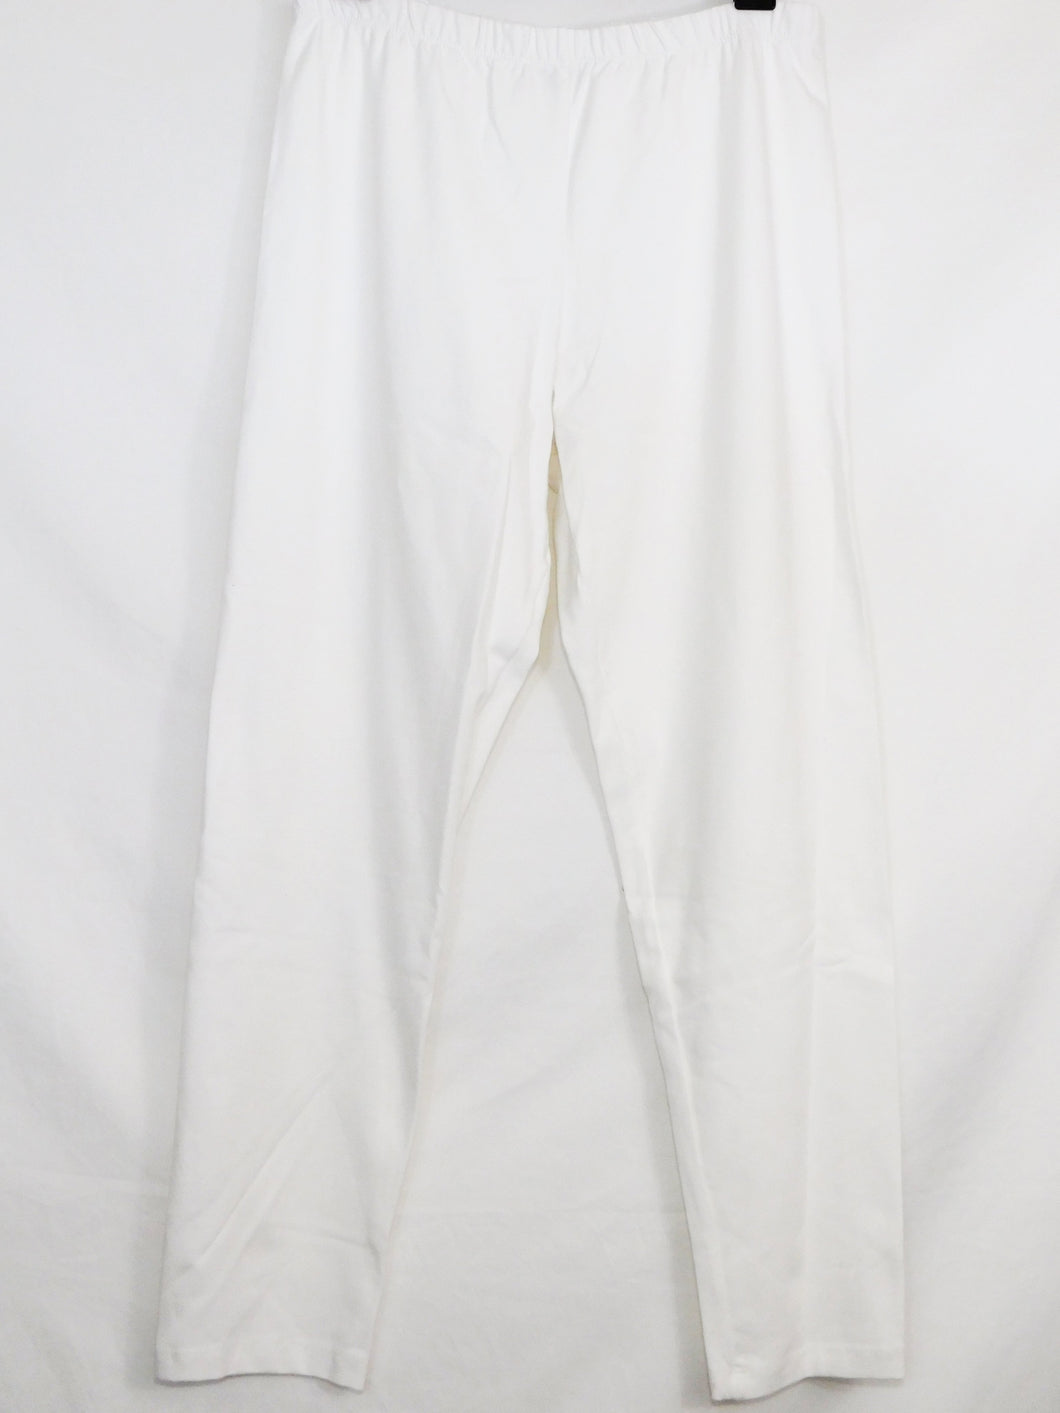 Skinnie Ankle Leggings - White